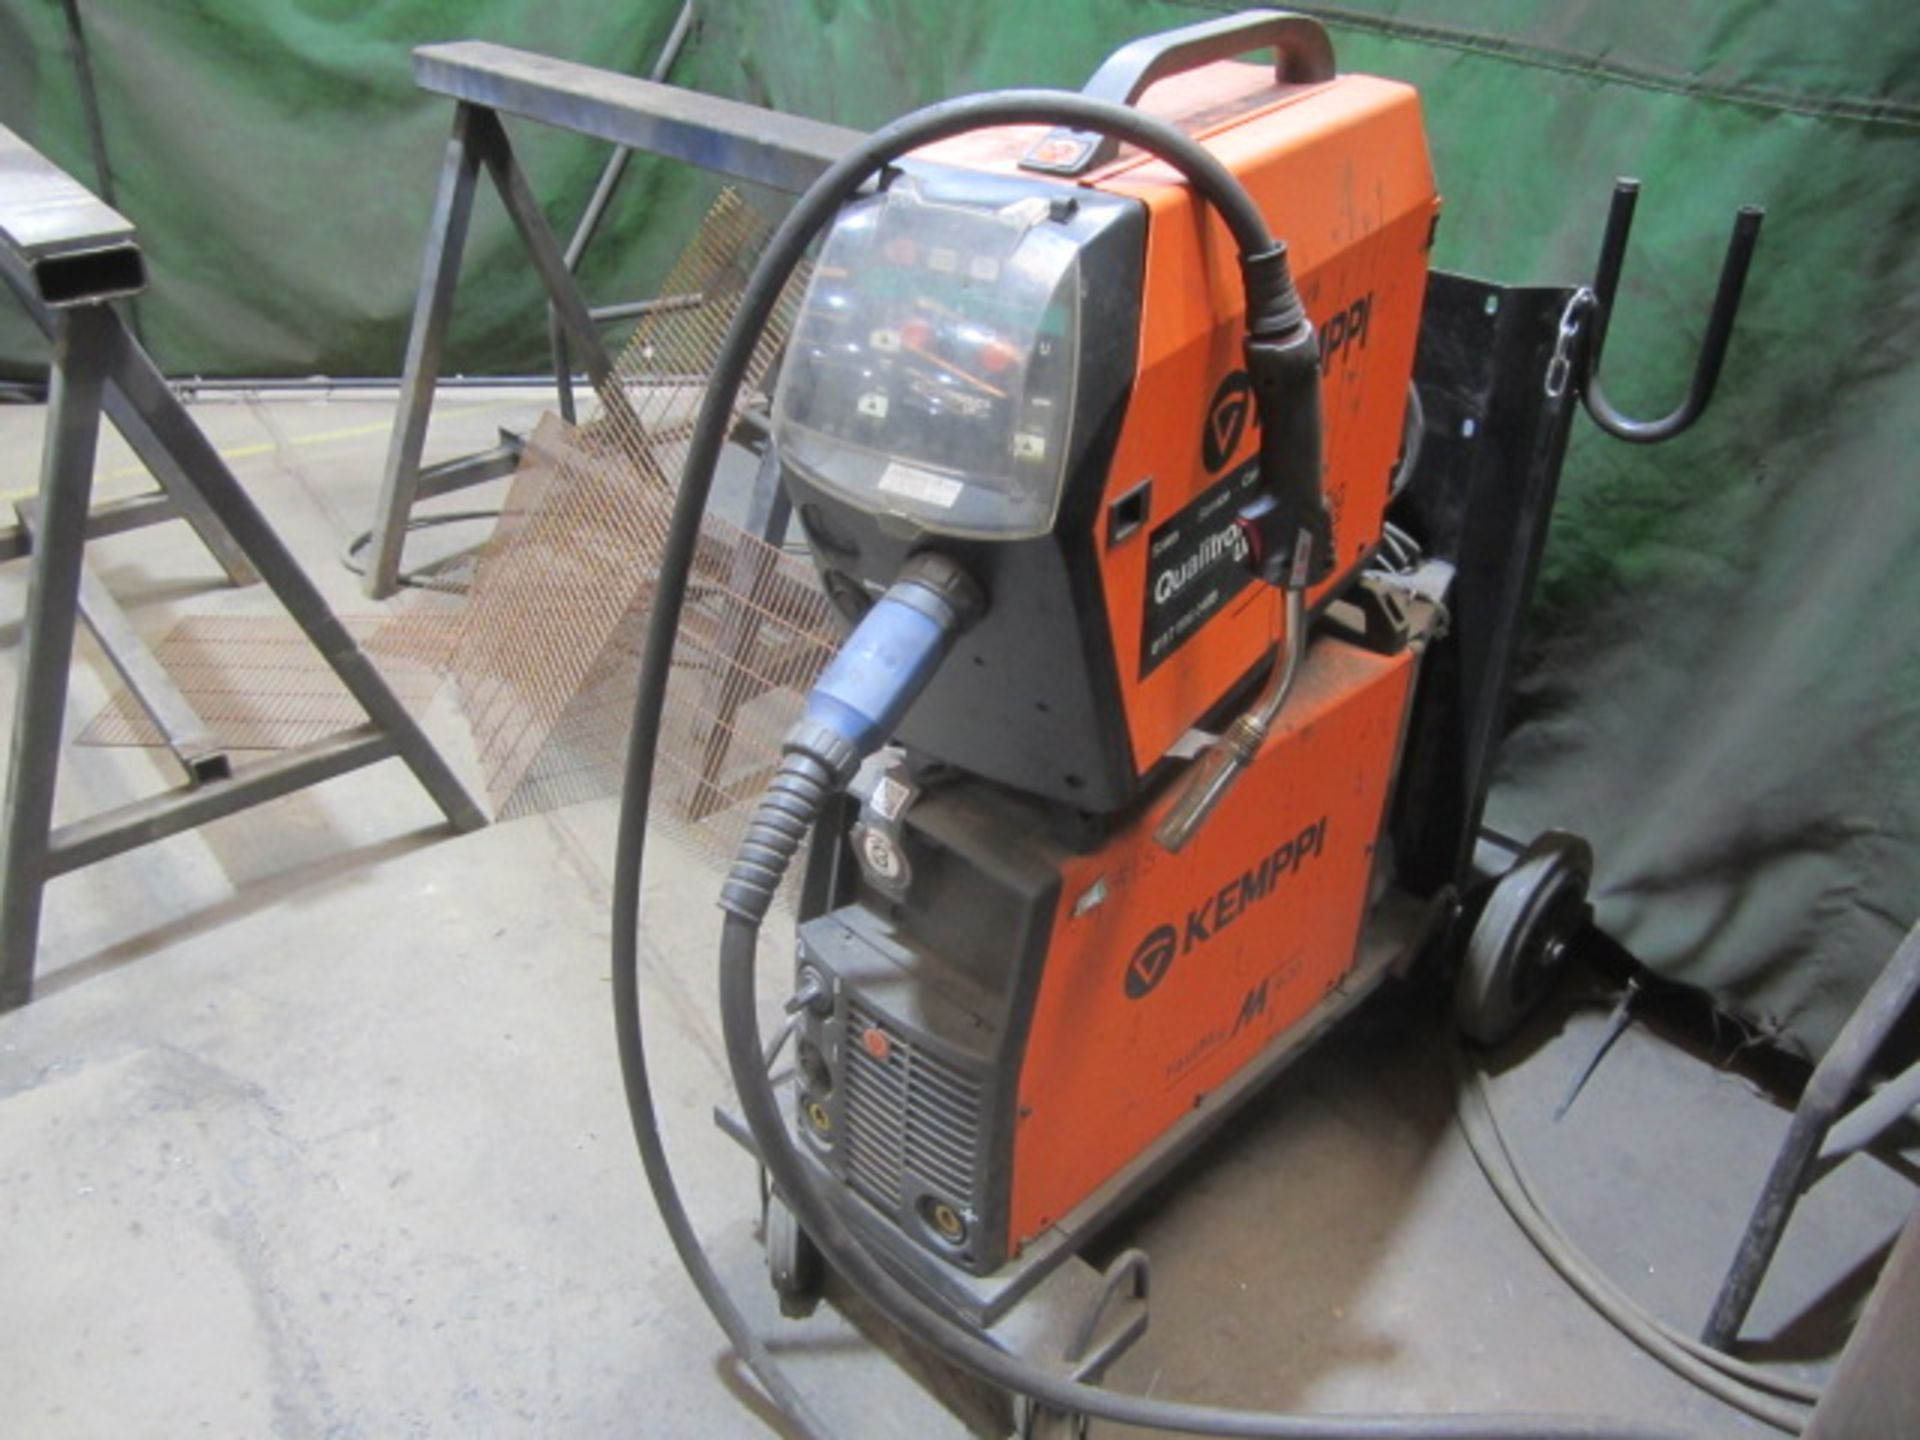 Kemppi Fast Mig M420 mig welder, serial no. 2674258, with Fast Mig MXF65 wire feeder, serial no. - Image 2 of 8